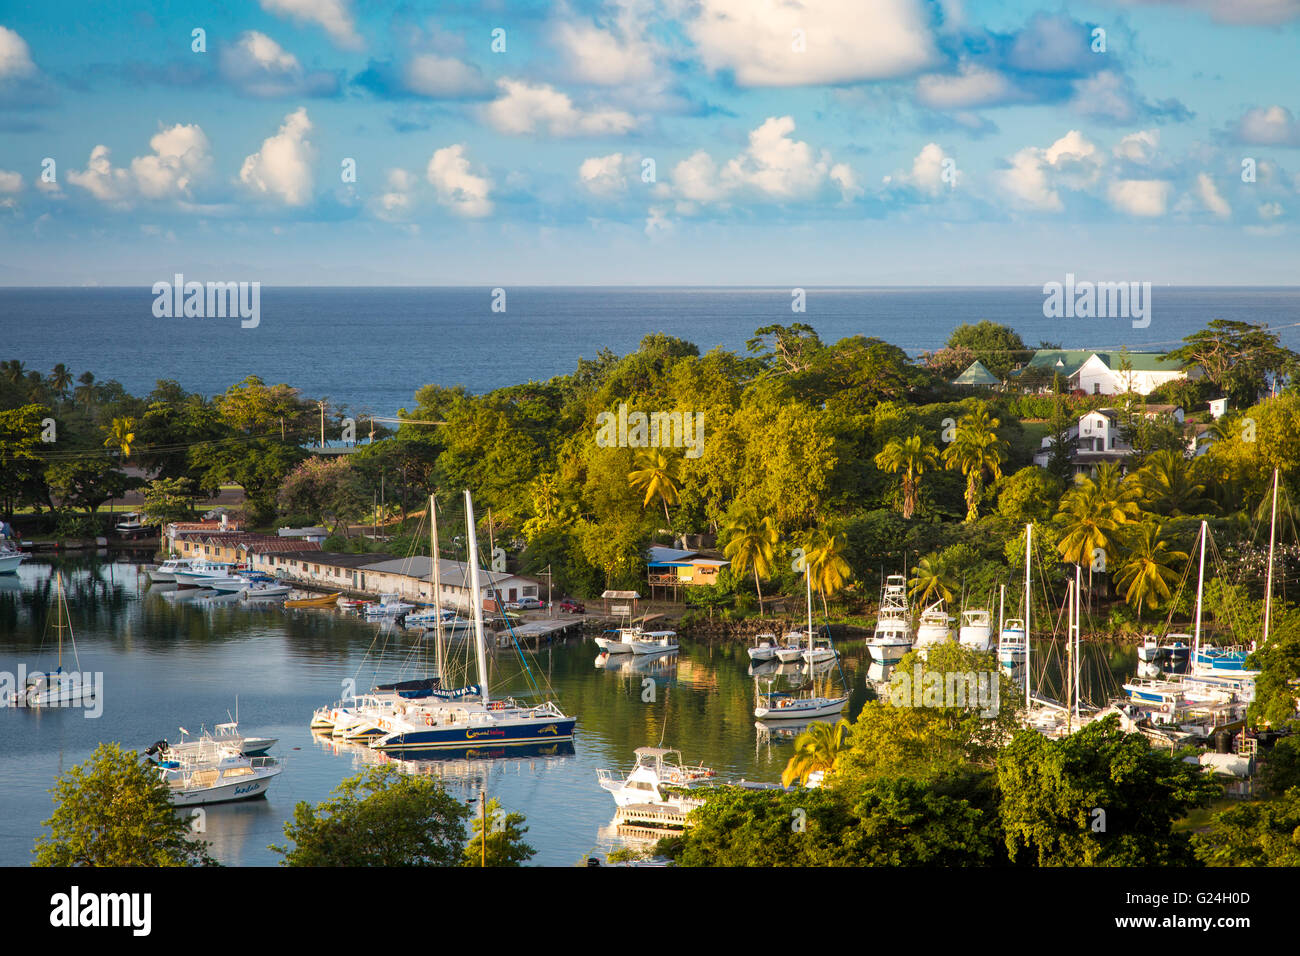 Setting sunlight over the tiny harbor in Castries, St Lucia, West Indies - Stock Image